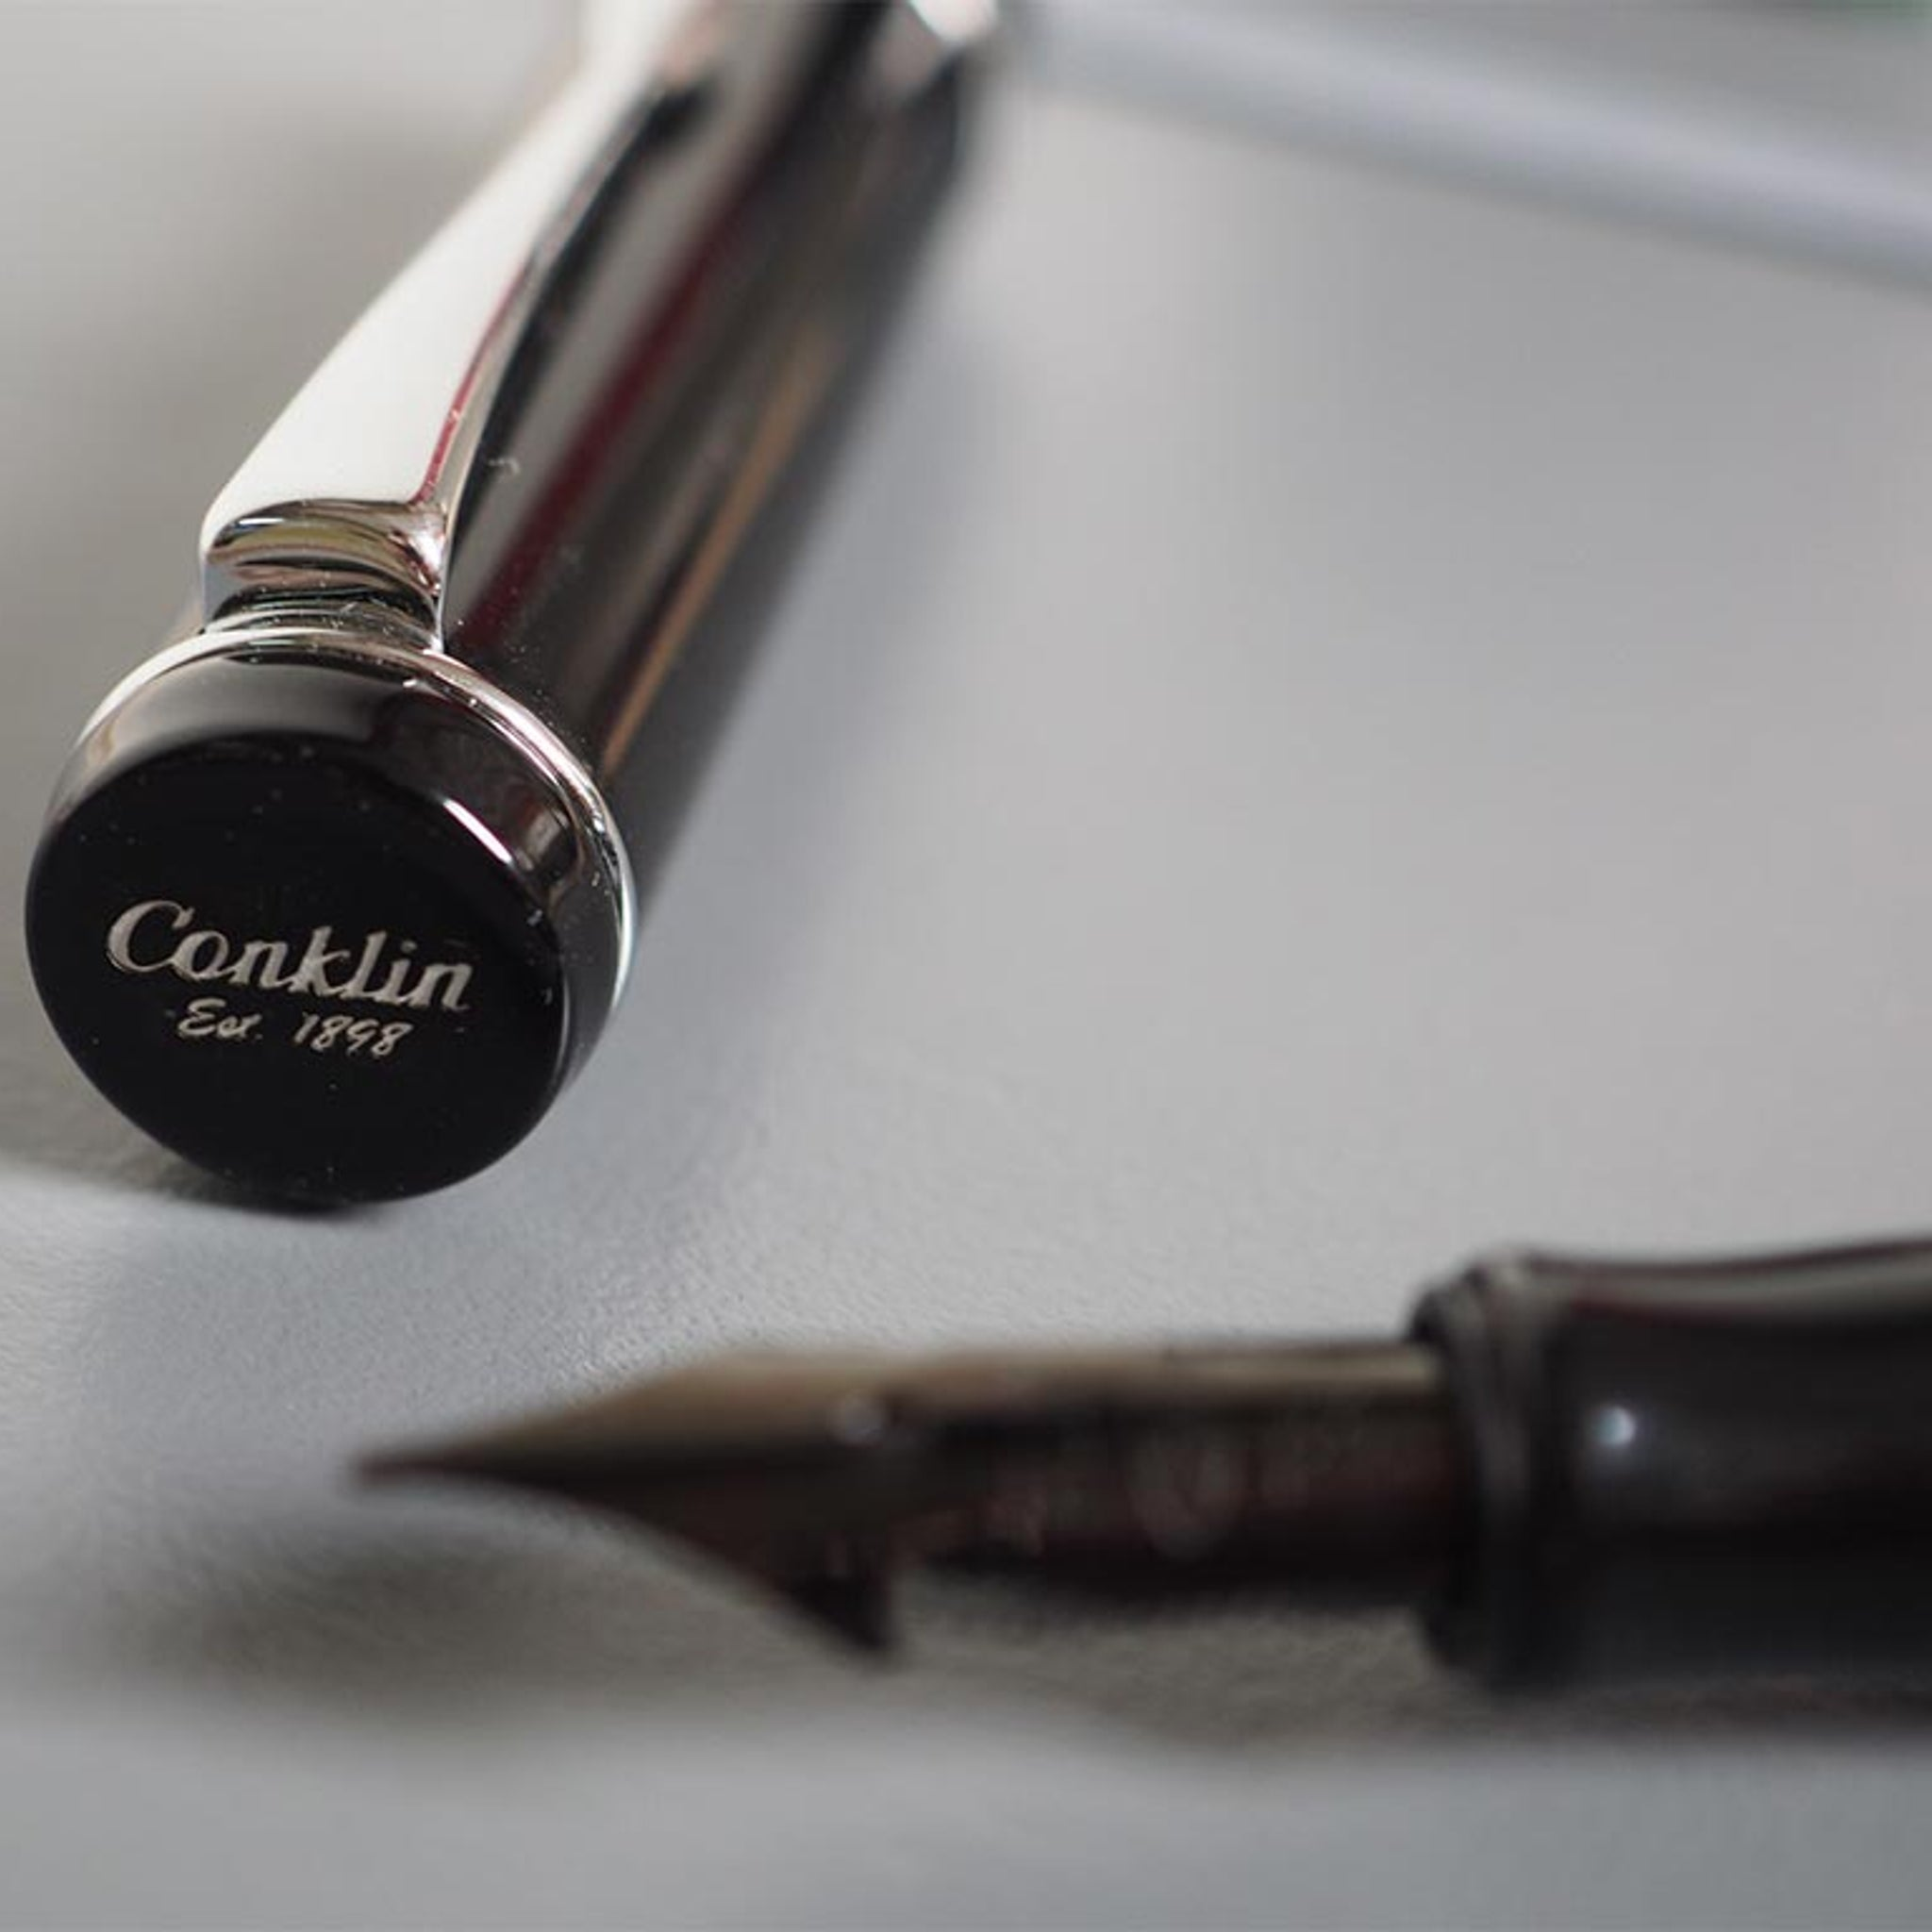 Conklin Duraflex Limited Edition Fountain Pen (Flex Nib) Chrome